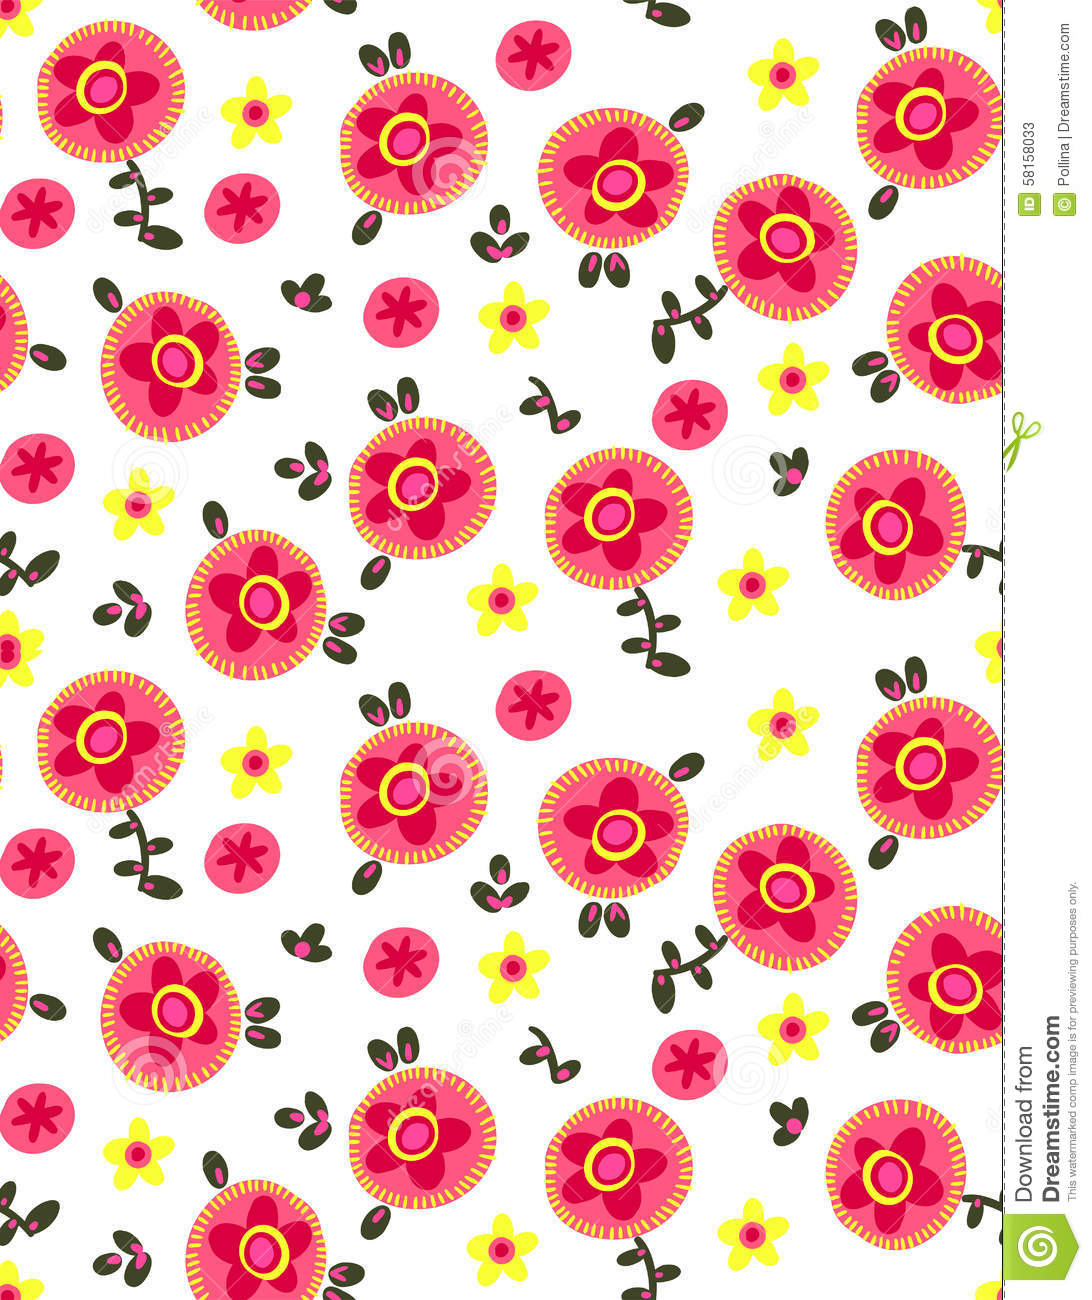 Primitive Simple Flowers Stock Vector Illustration Of Fabric 58158033